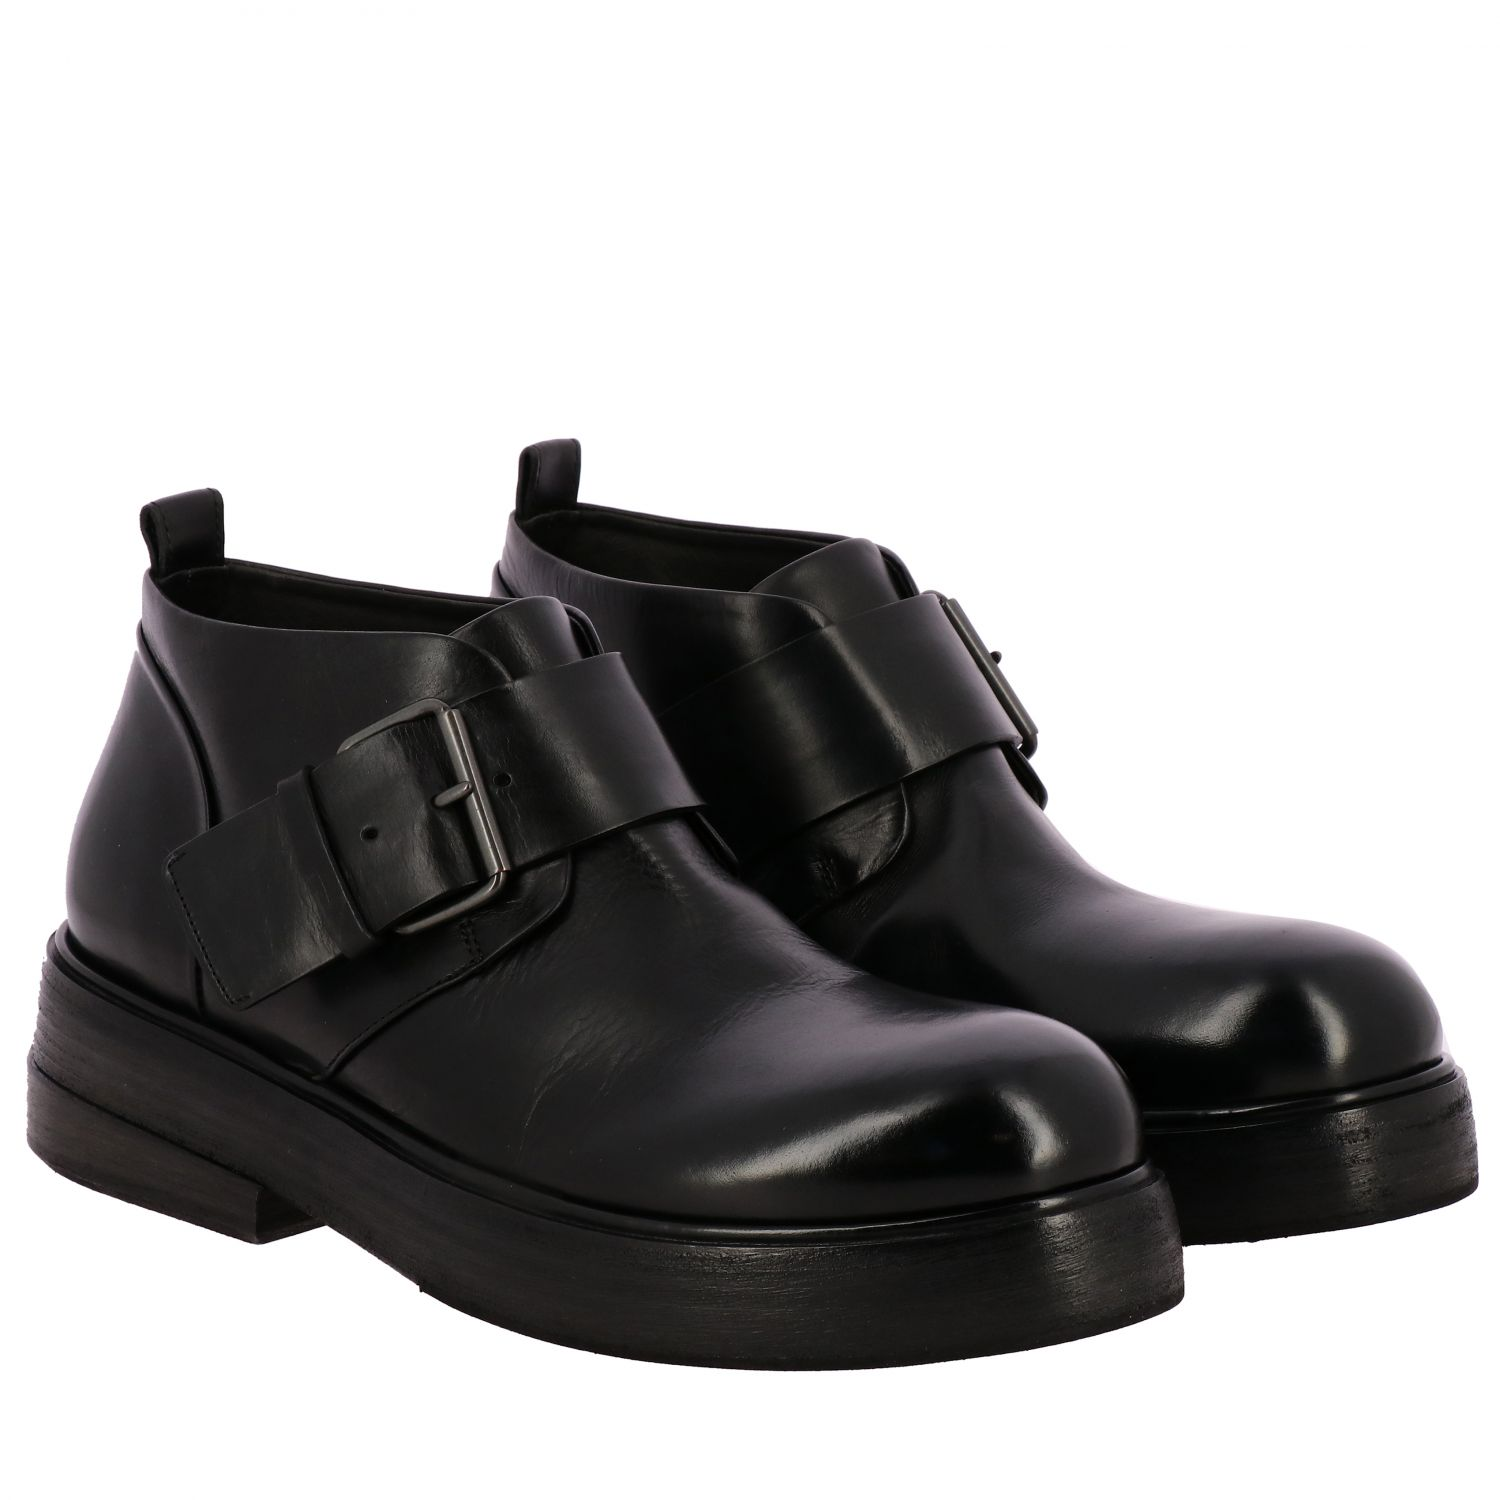 Zuccolona Marsell shoes in hand-colored natural leather black 2